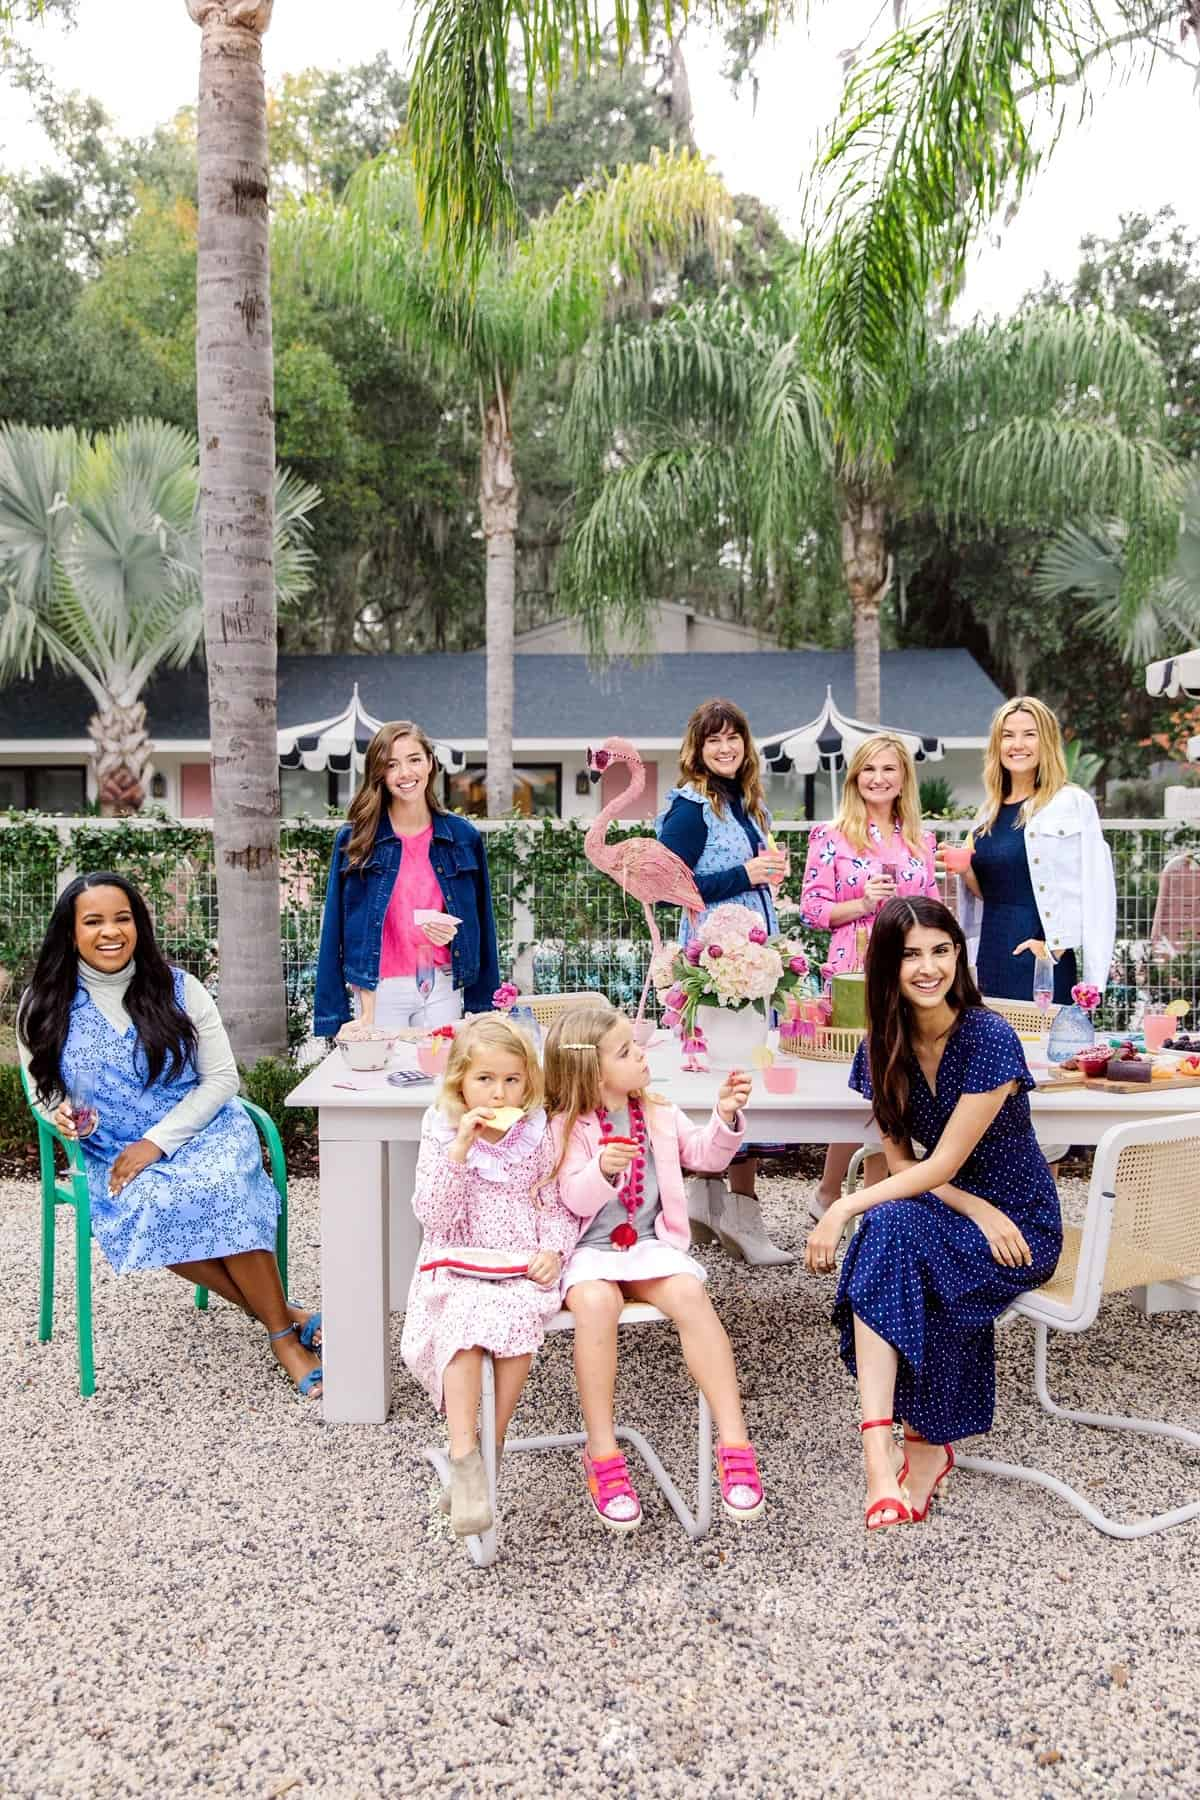 Behind The Scenes Draper James Trip by popular Dallas fashion blog, Glamorous Versatility: image of a group of women wearing  Draper James clothing at The Park on Saint Simons Island.